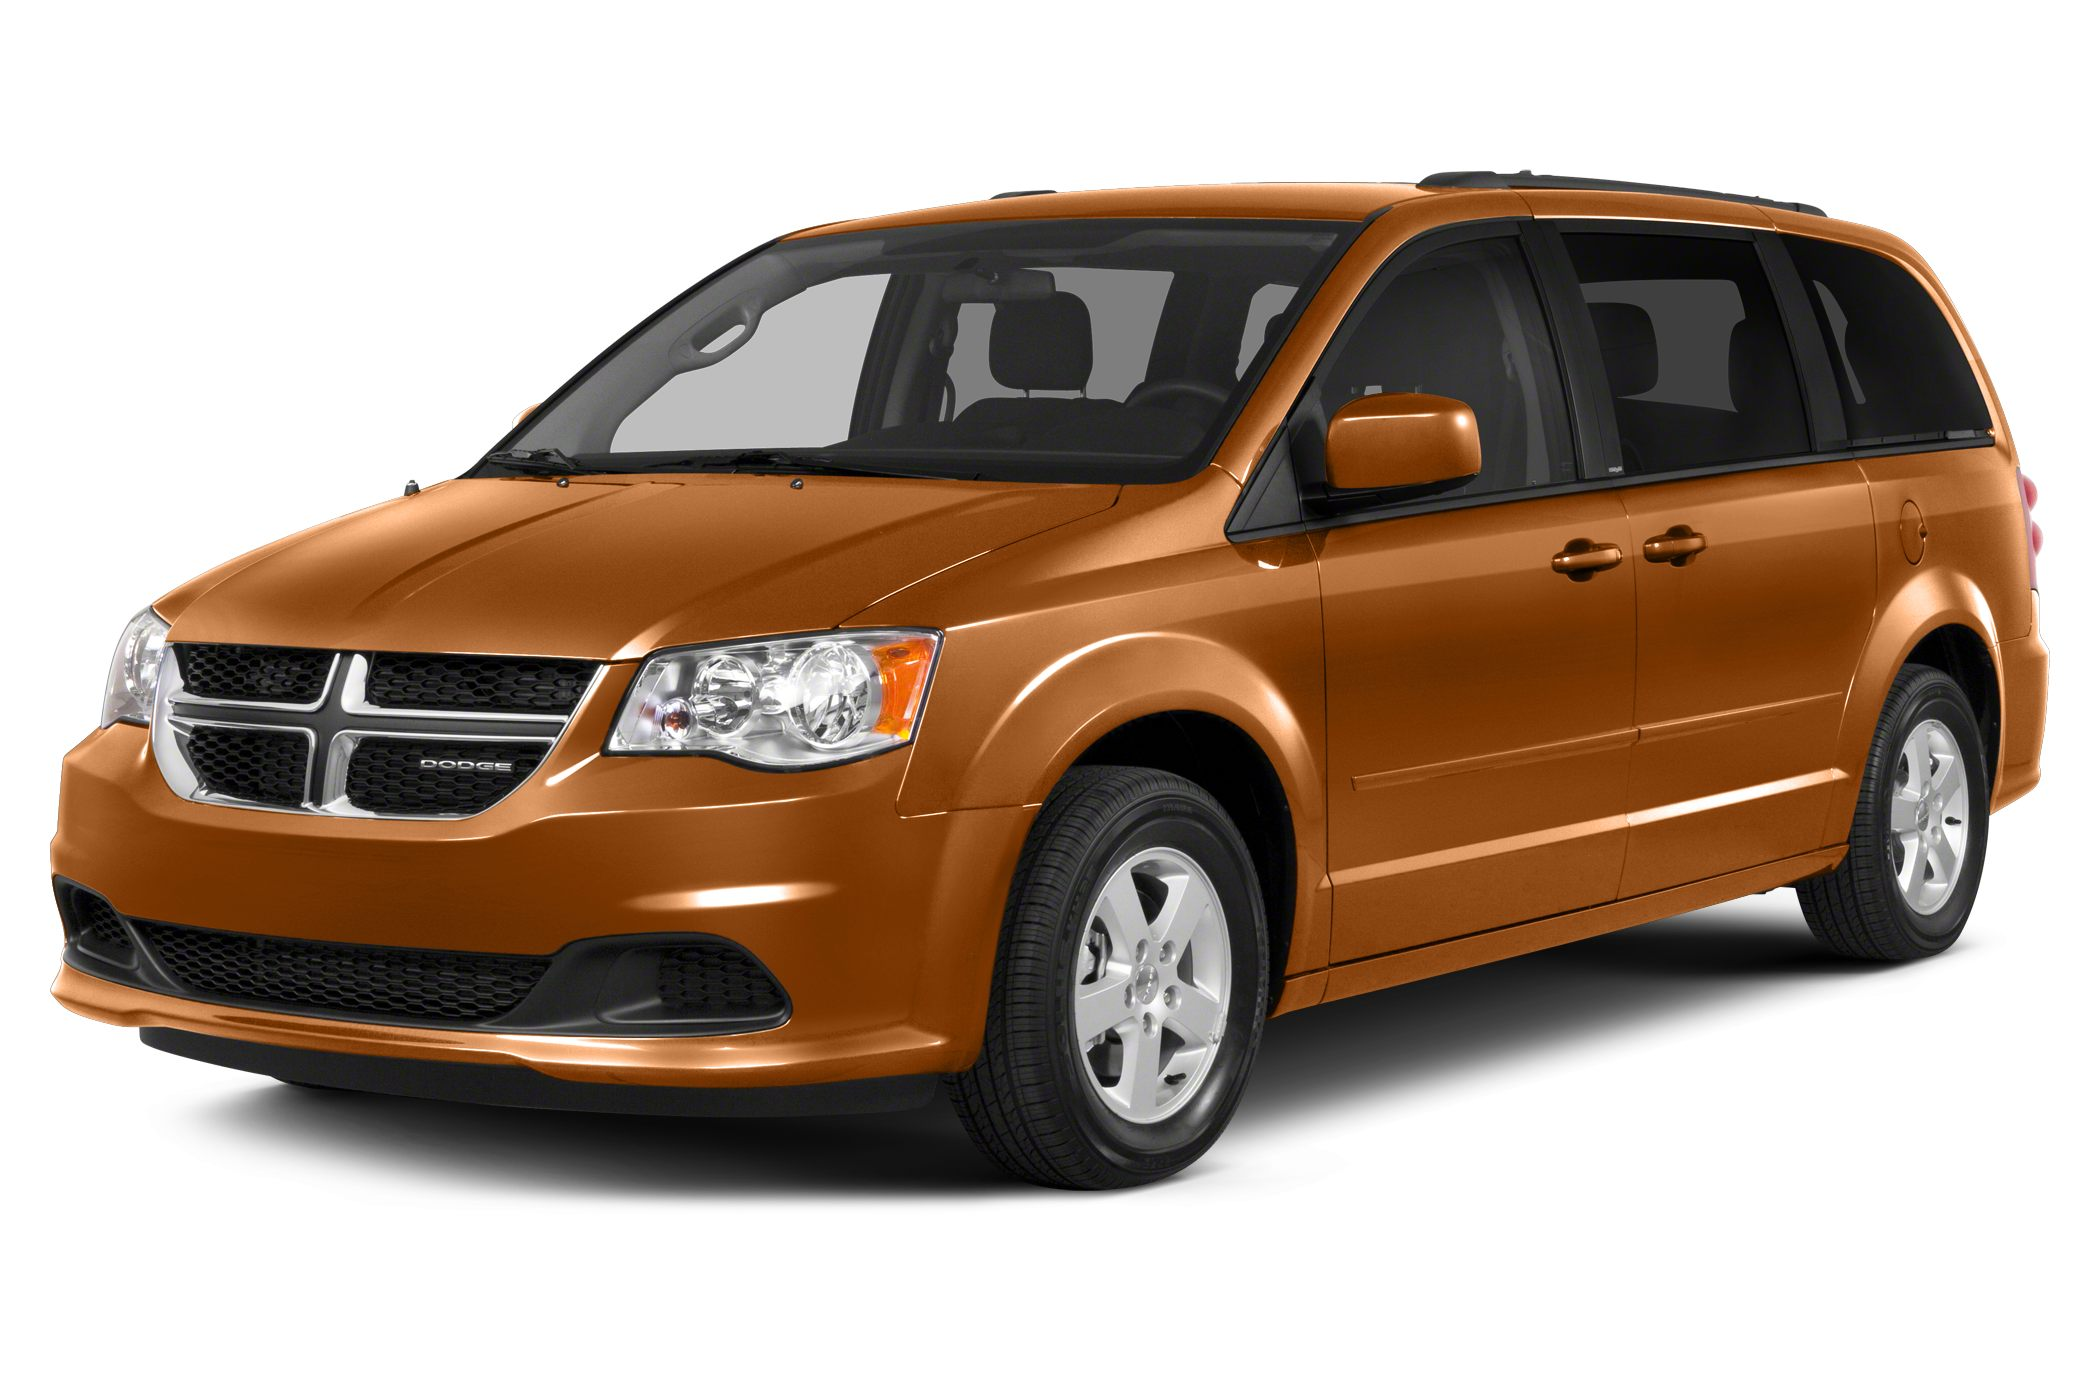 2011 Dodge Grand Caravan Crew Certifed by CARFAX - NO ACCIDENTS What a price for an 11 Lookin